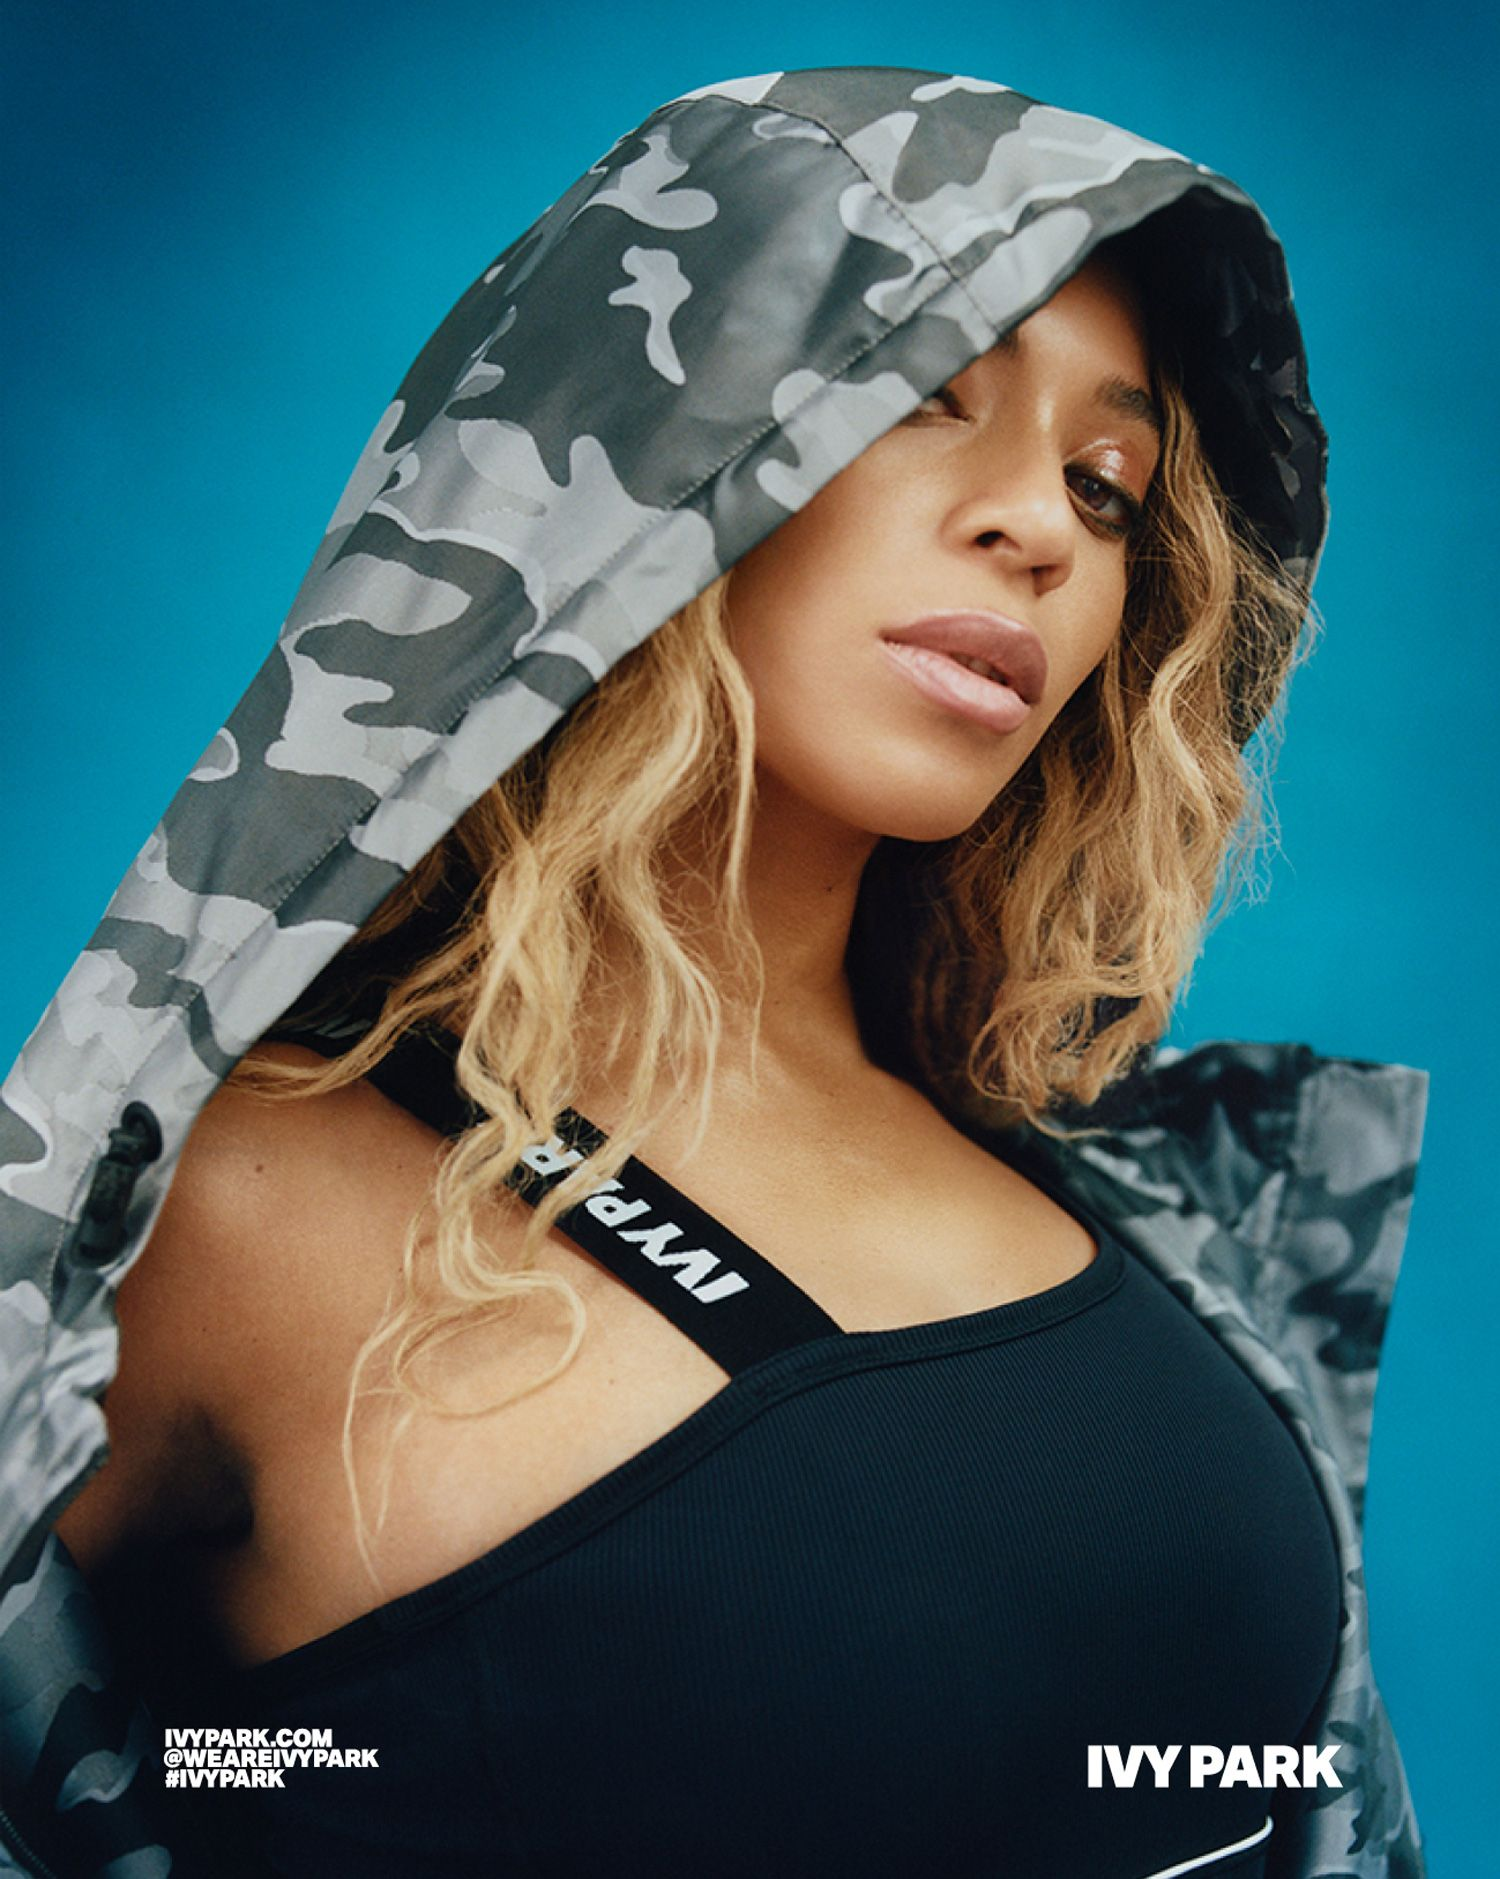 Beyonce Teases Her Upcoming Ivy Park Clothing Line With